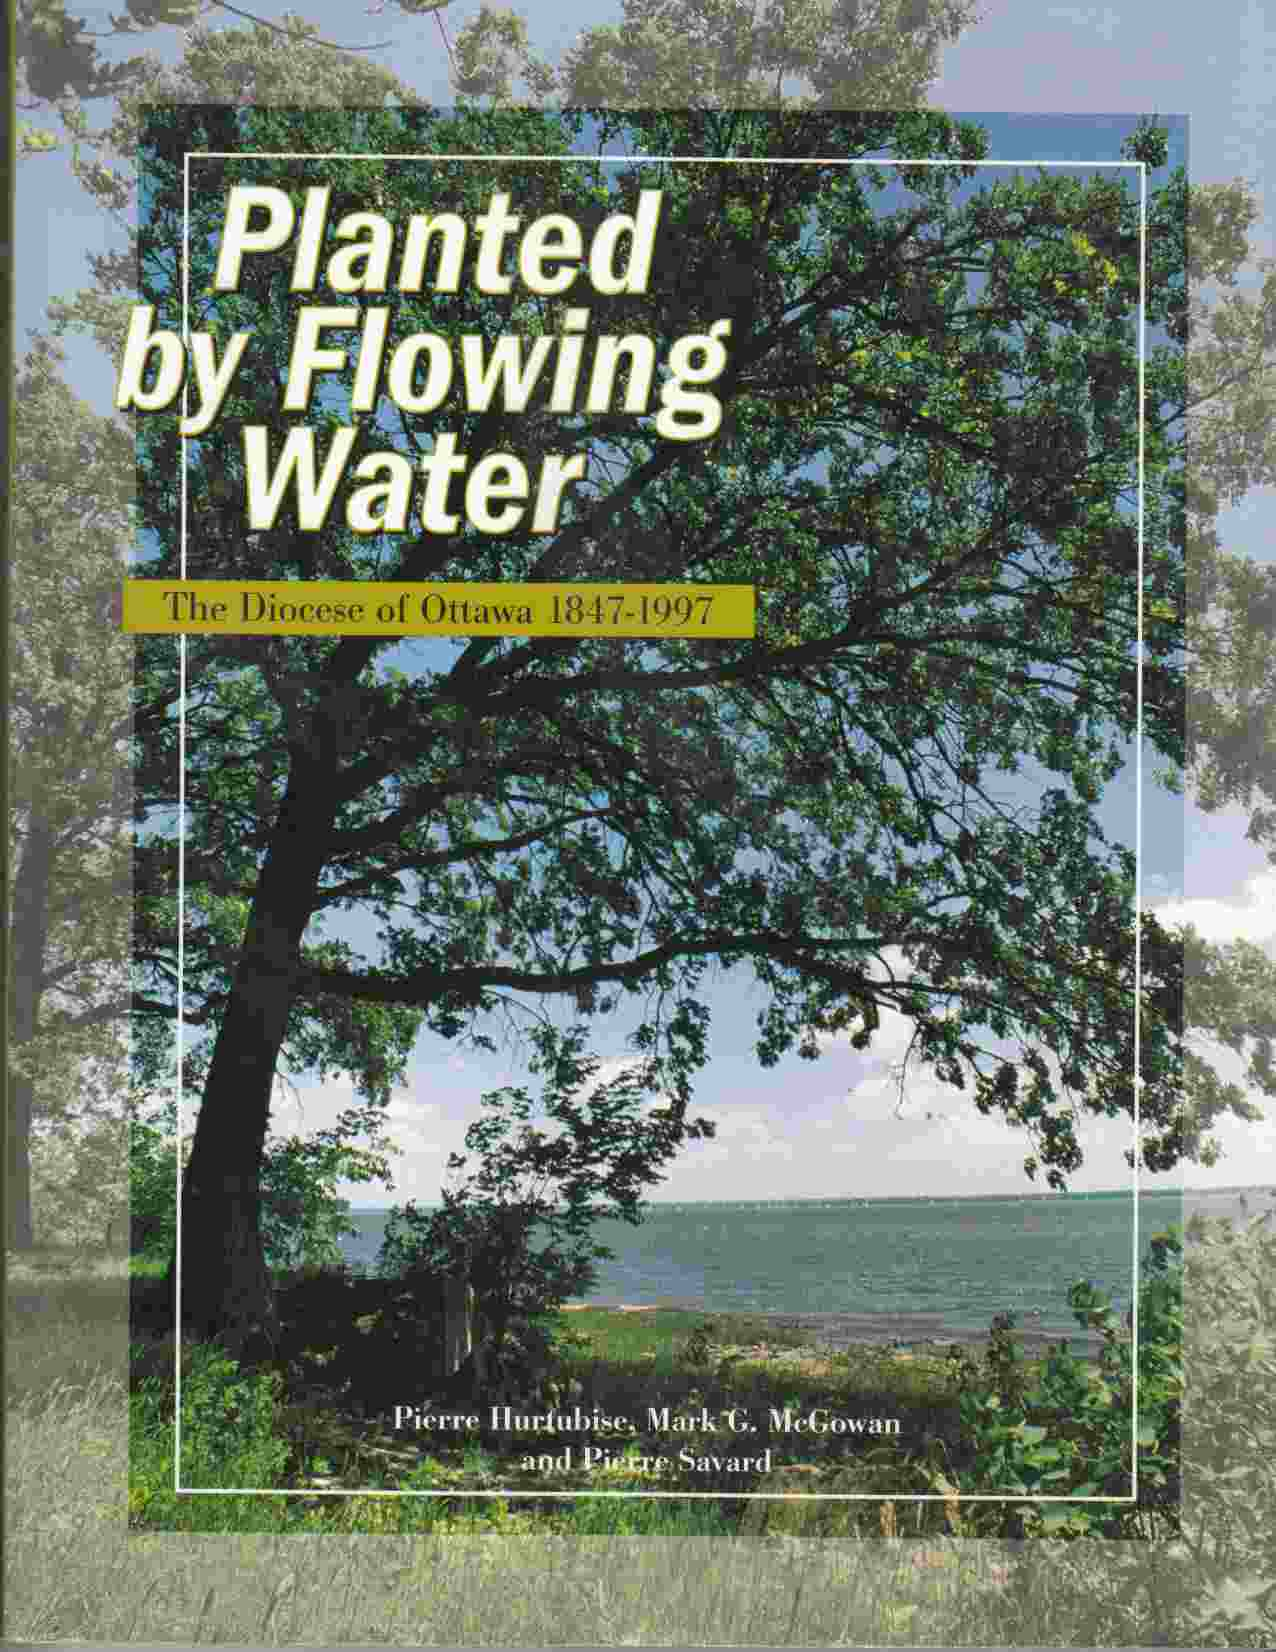 Image for Planted by Flowing Water The Diocese of Ottawa 1847 - 1997